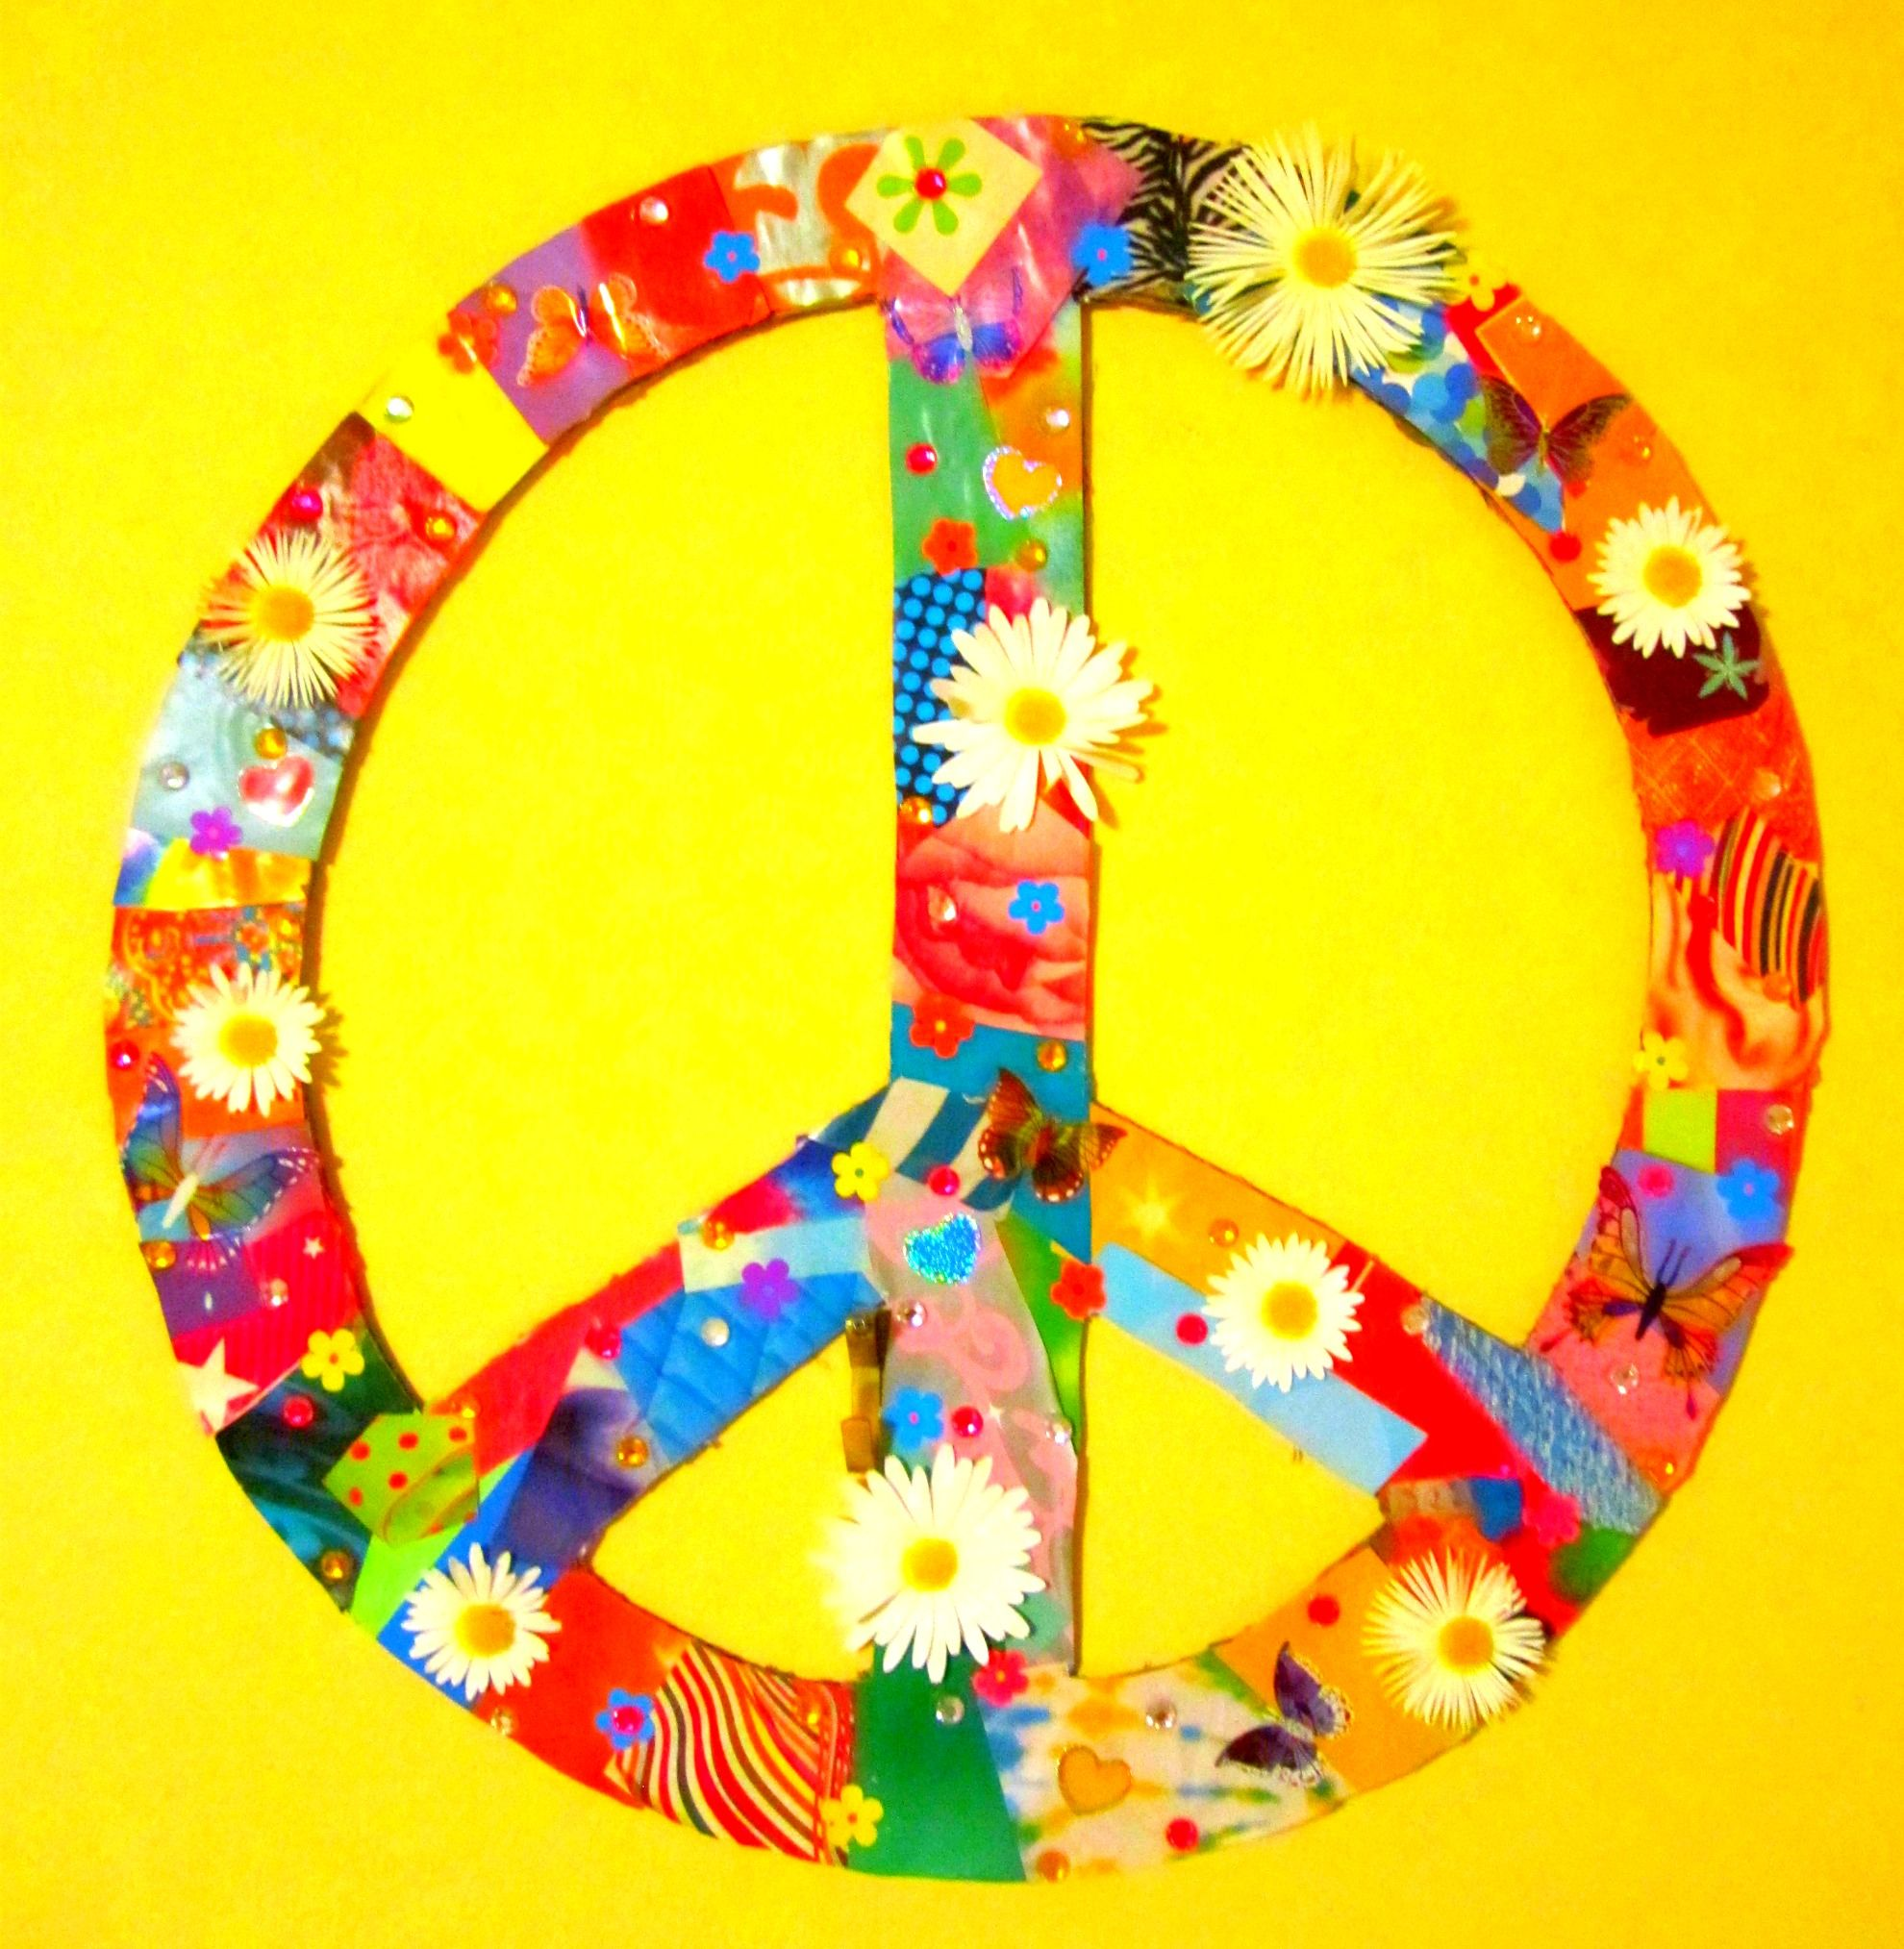 collaged peace sign | Aℓℓ Y☮υ ηεε∂ Is レ☮√乇 | Pinterest | Peace ...